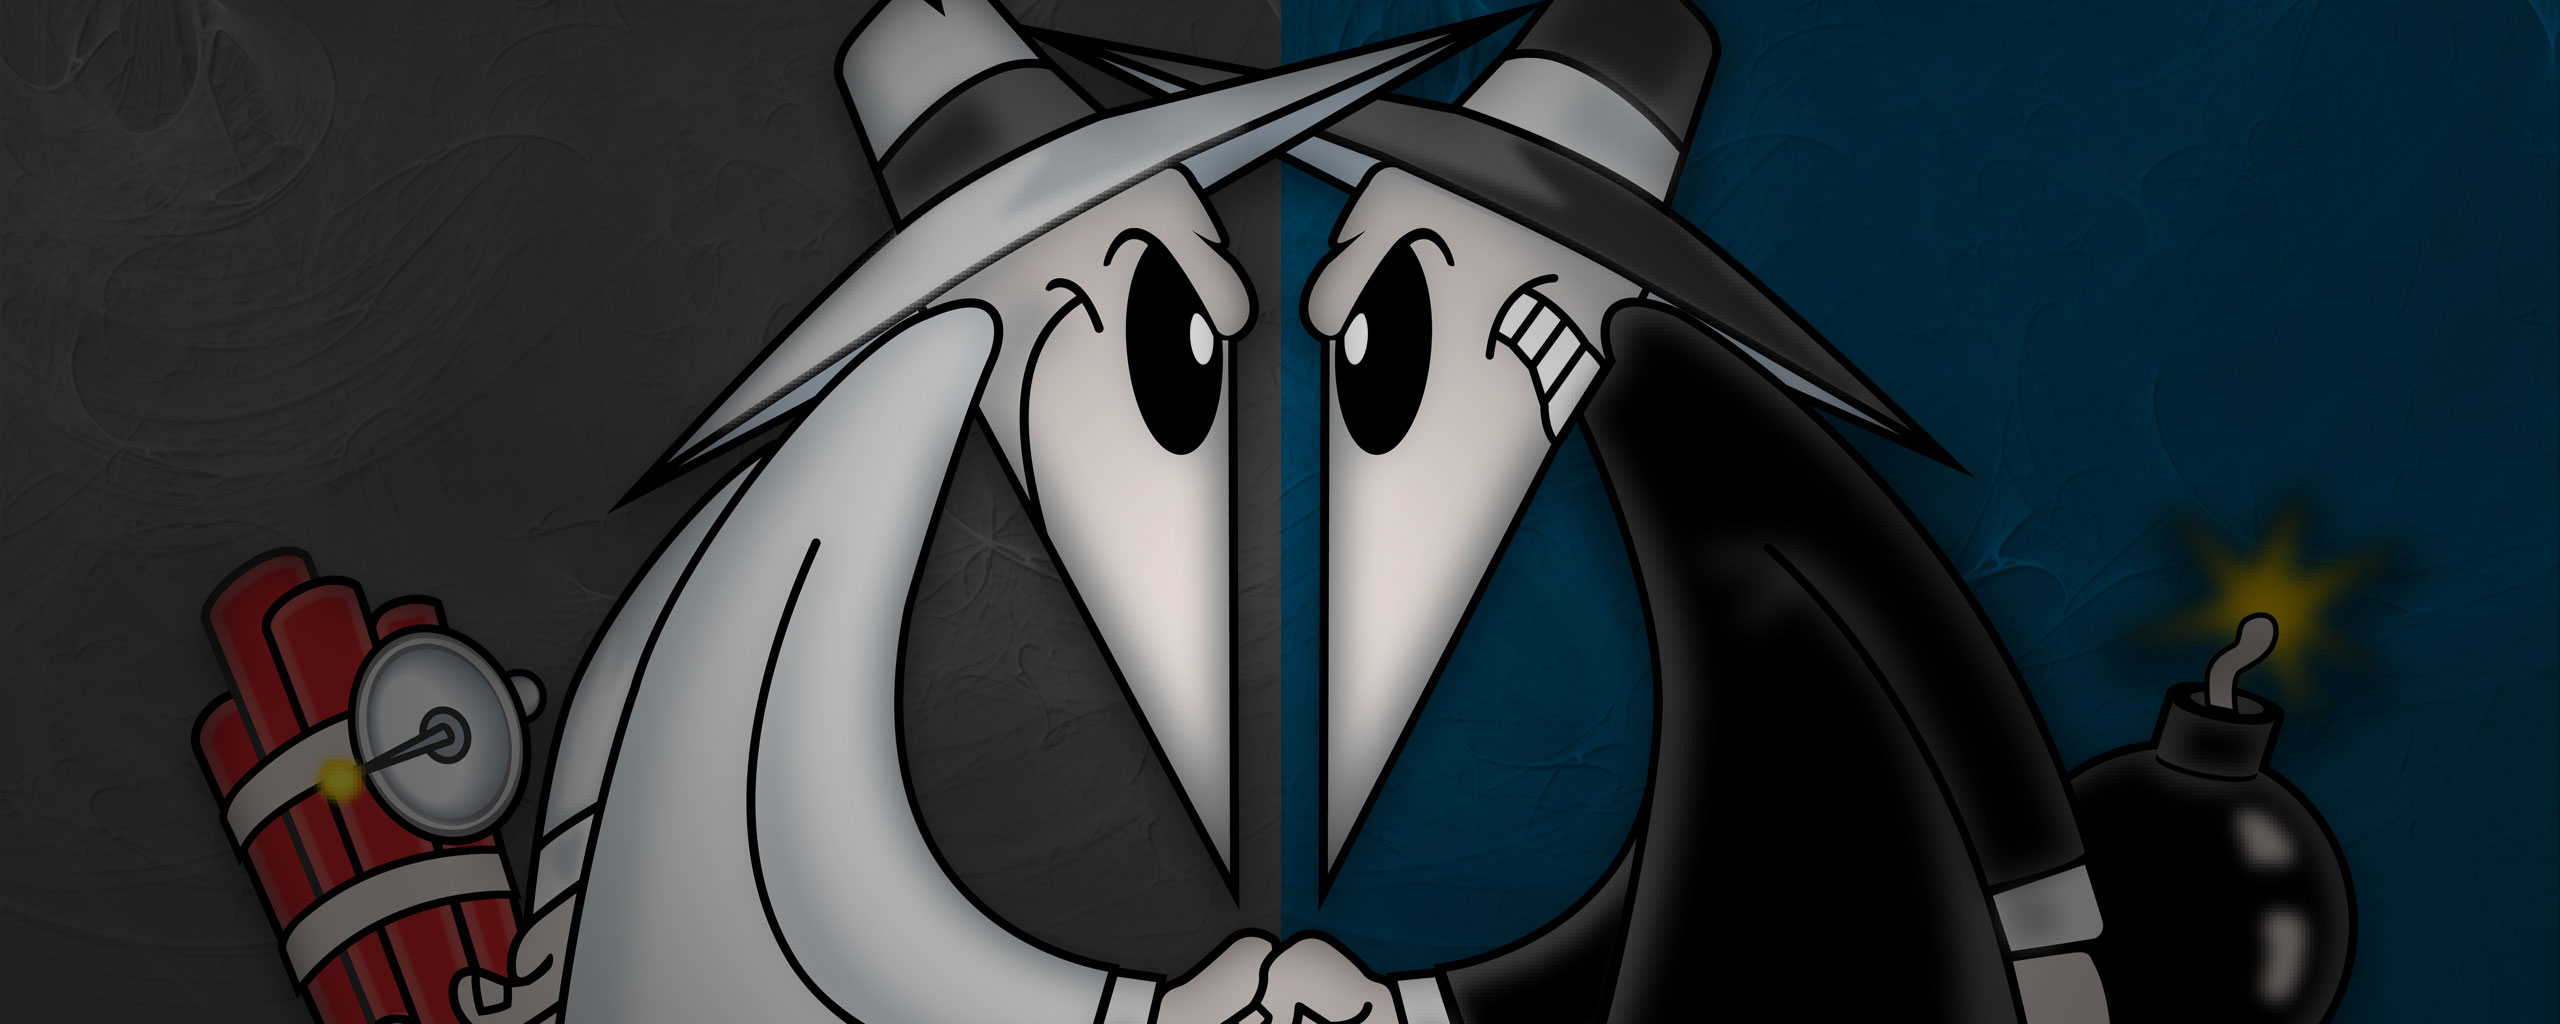 Spy vs Spy - By Mario Bordieri by bordieri